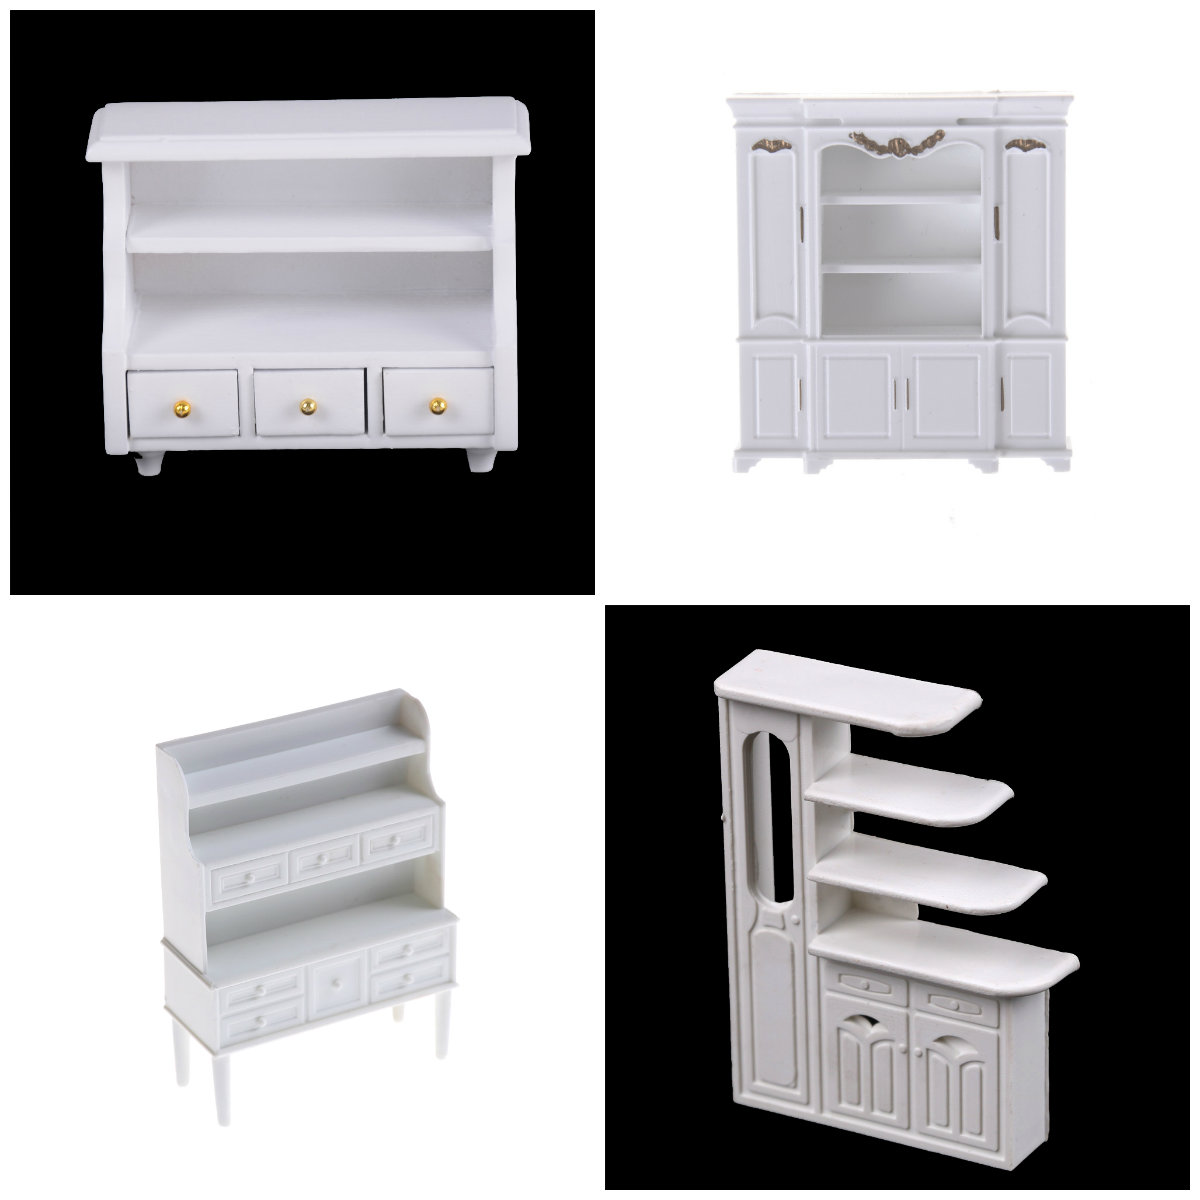 Permalink to Display Doll House Kitchen Dollhouse Accessories Mini Cabinet Model Chest Cupboard Shelf White Cabinet Kitchen Dining Display